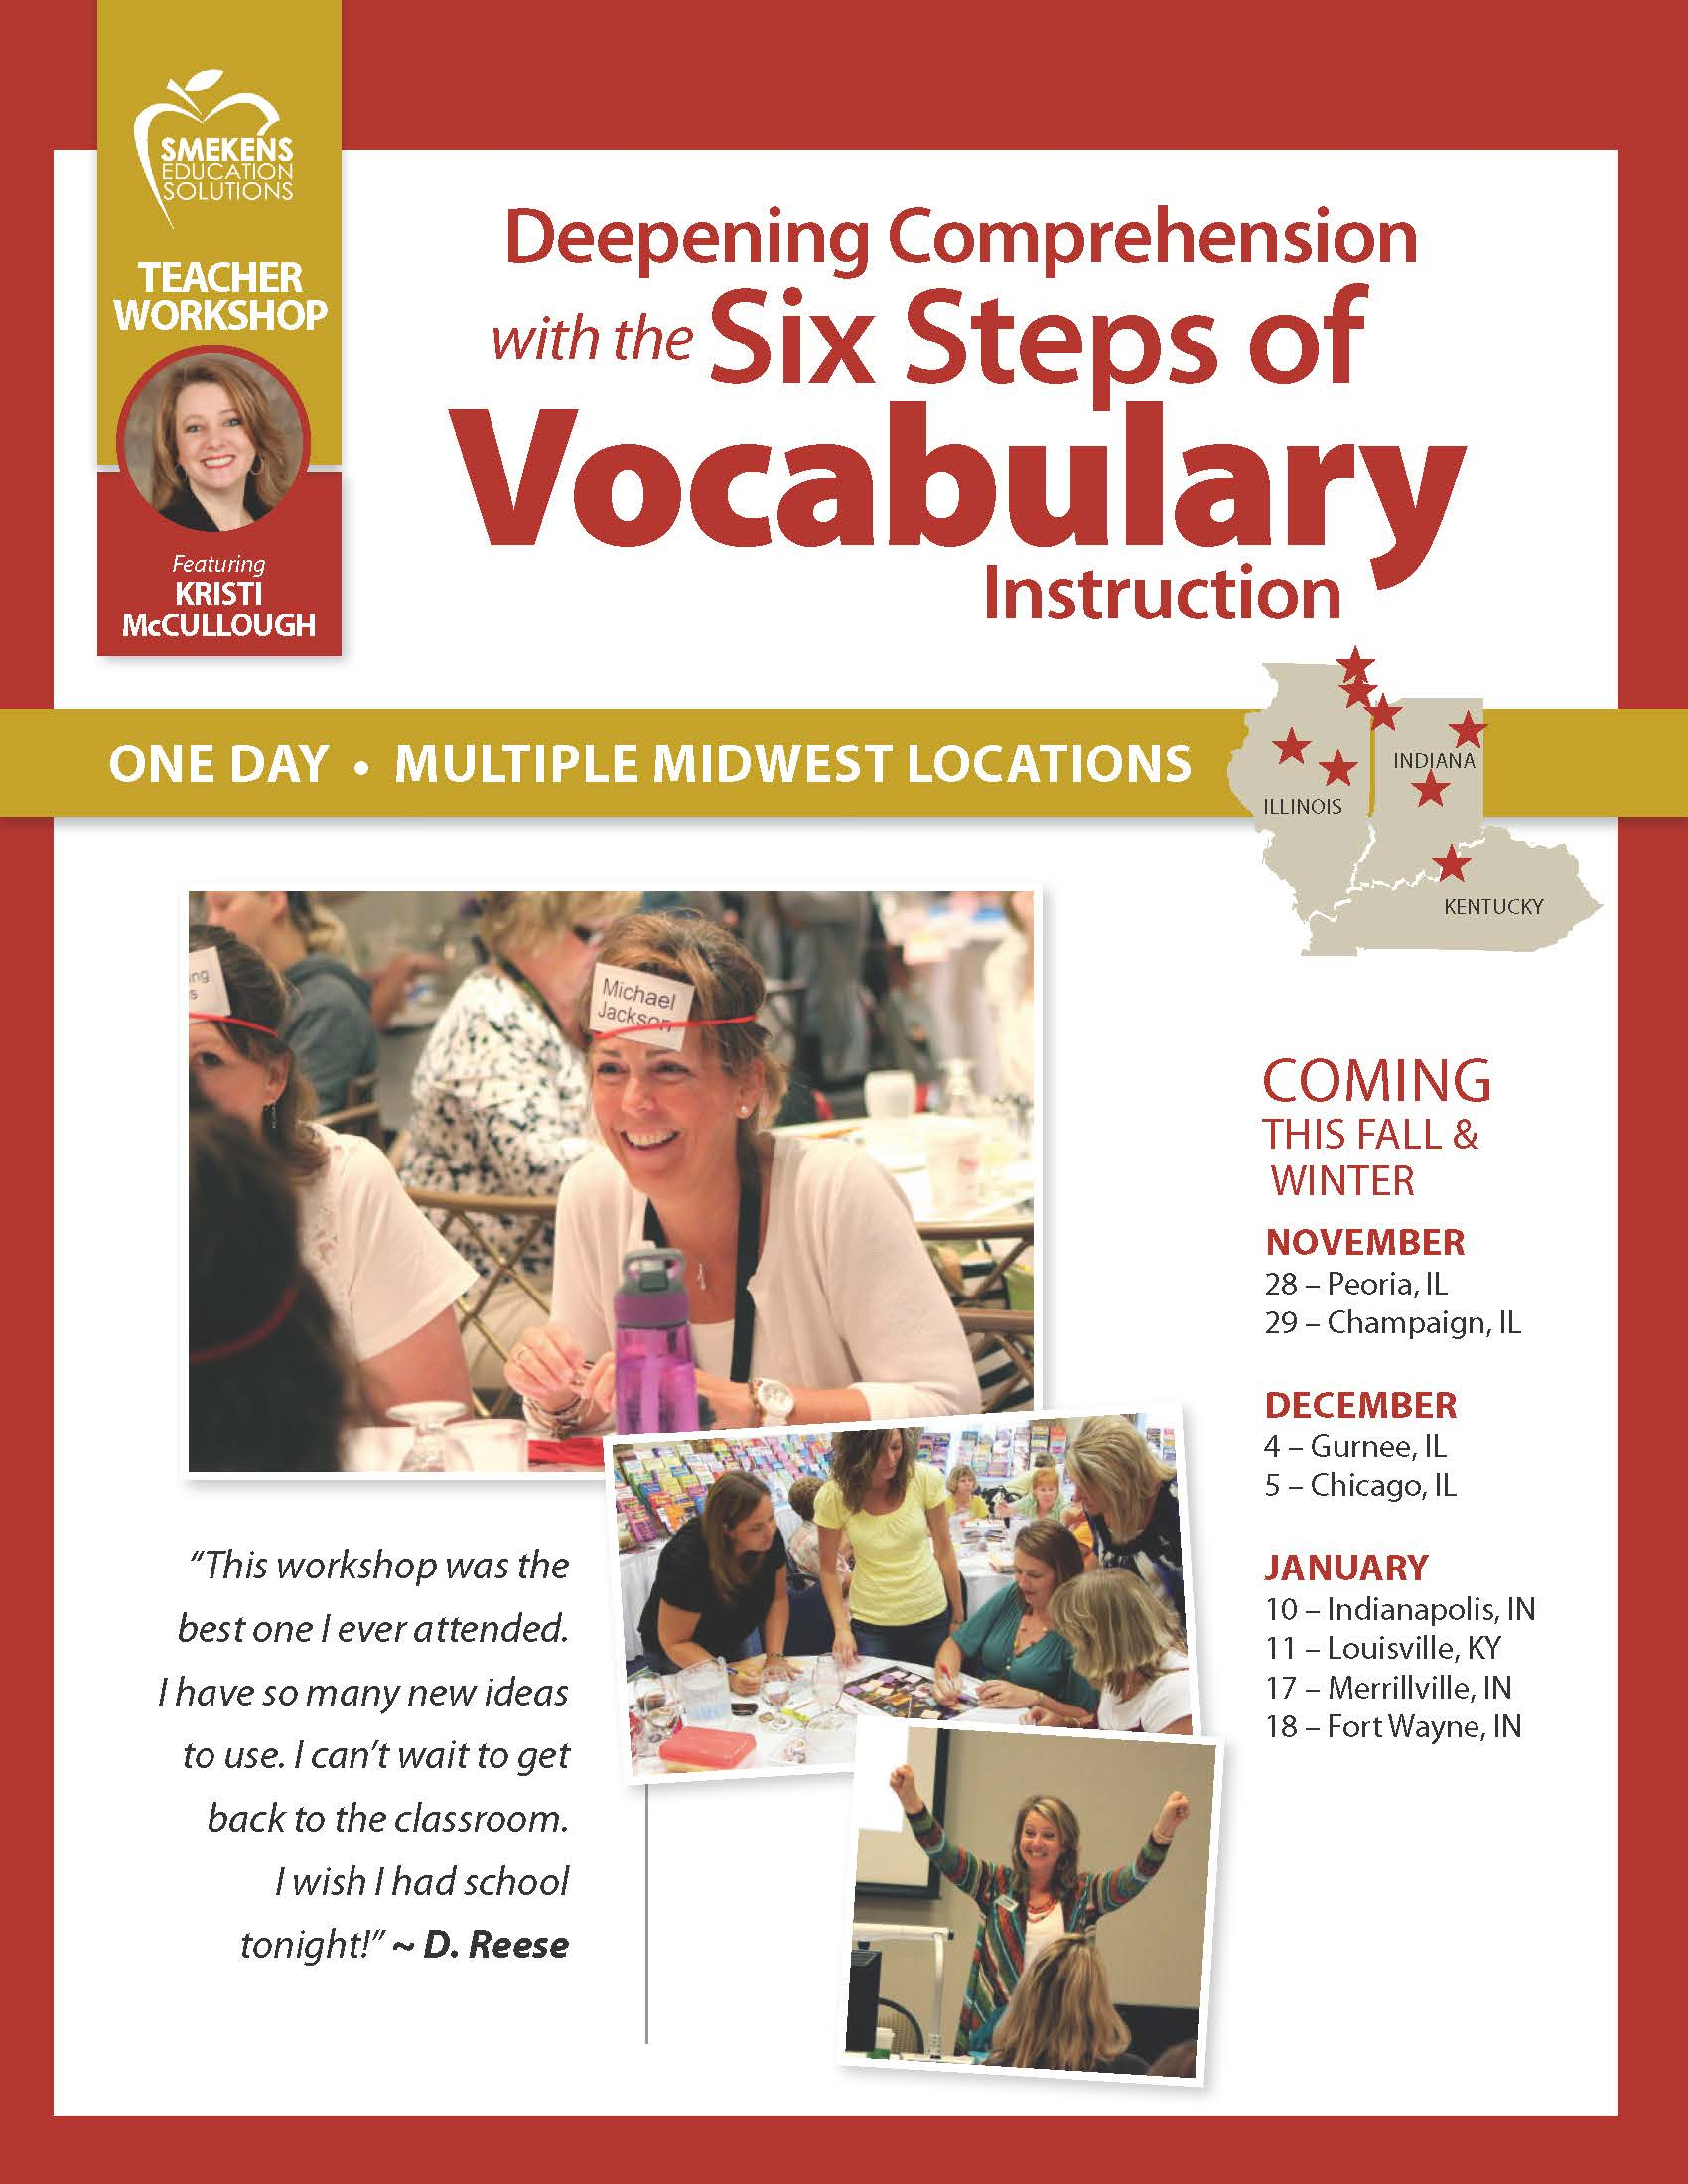 Deepening Comprehension with the Six Steps of Vocabulary Instruction